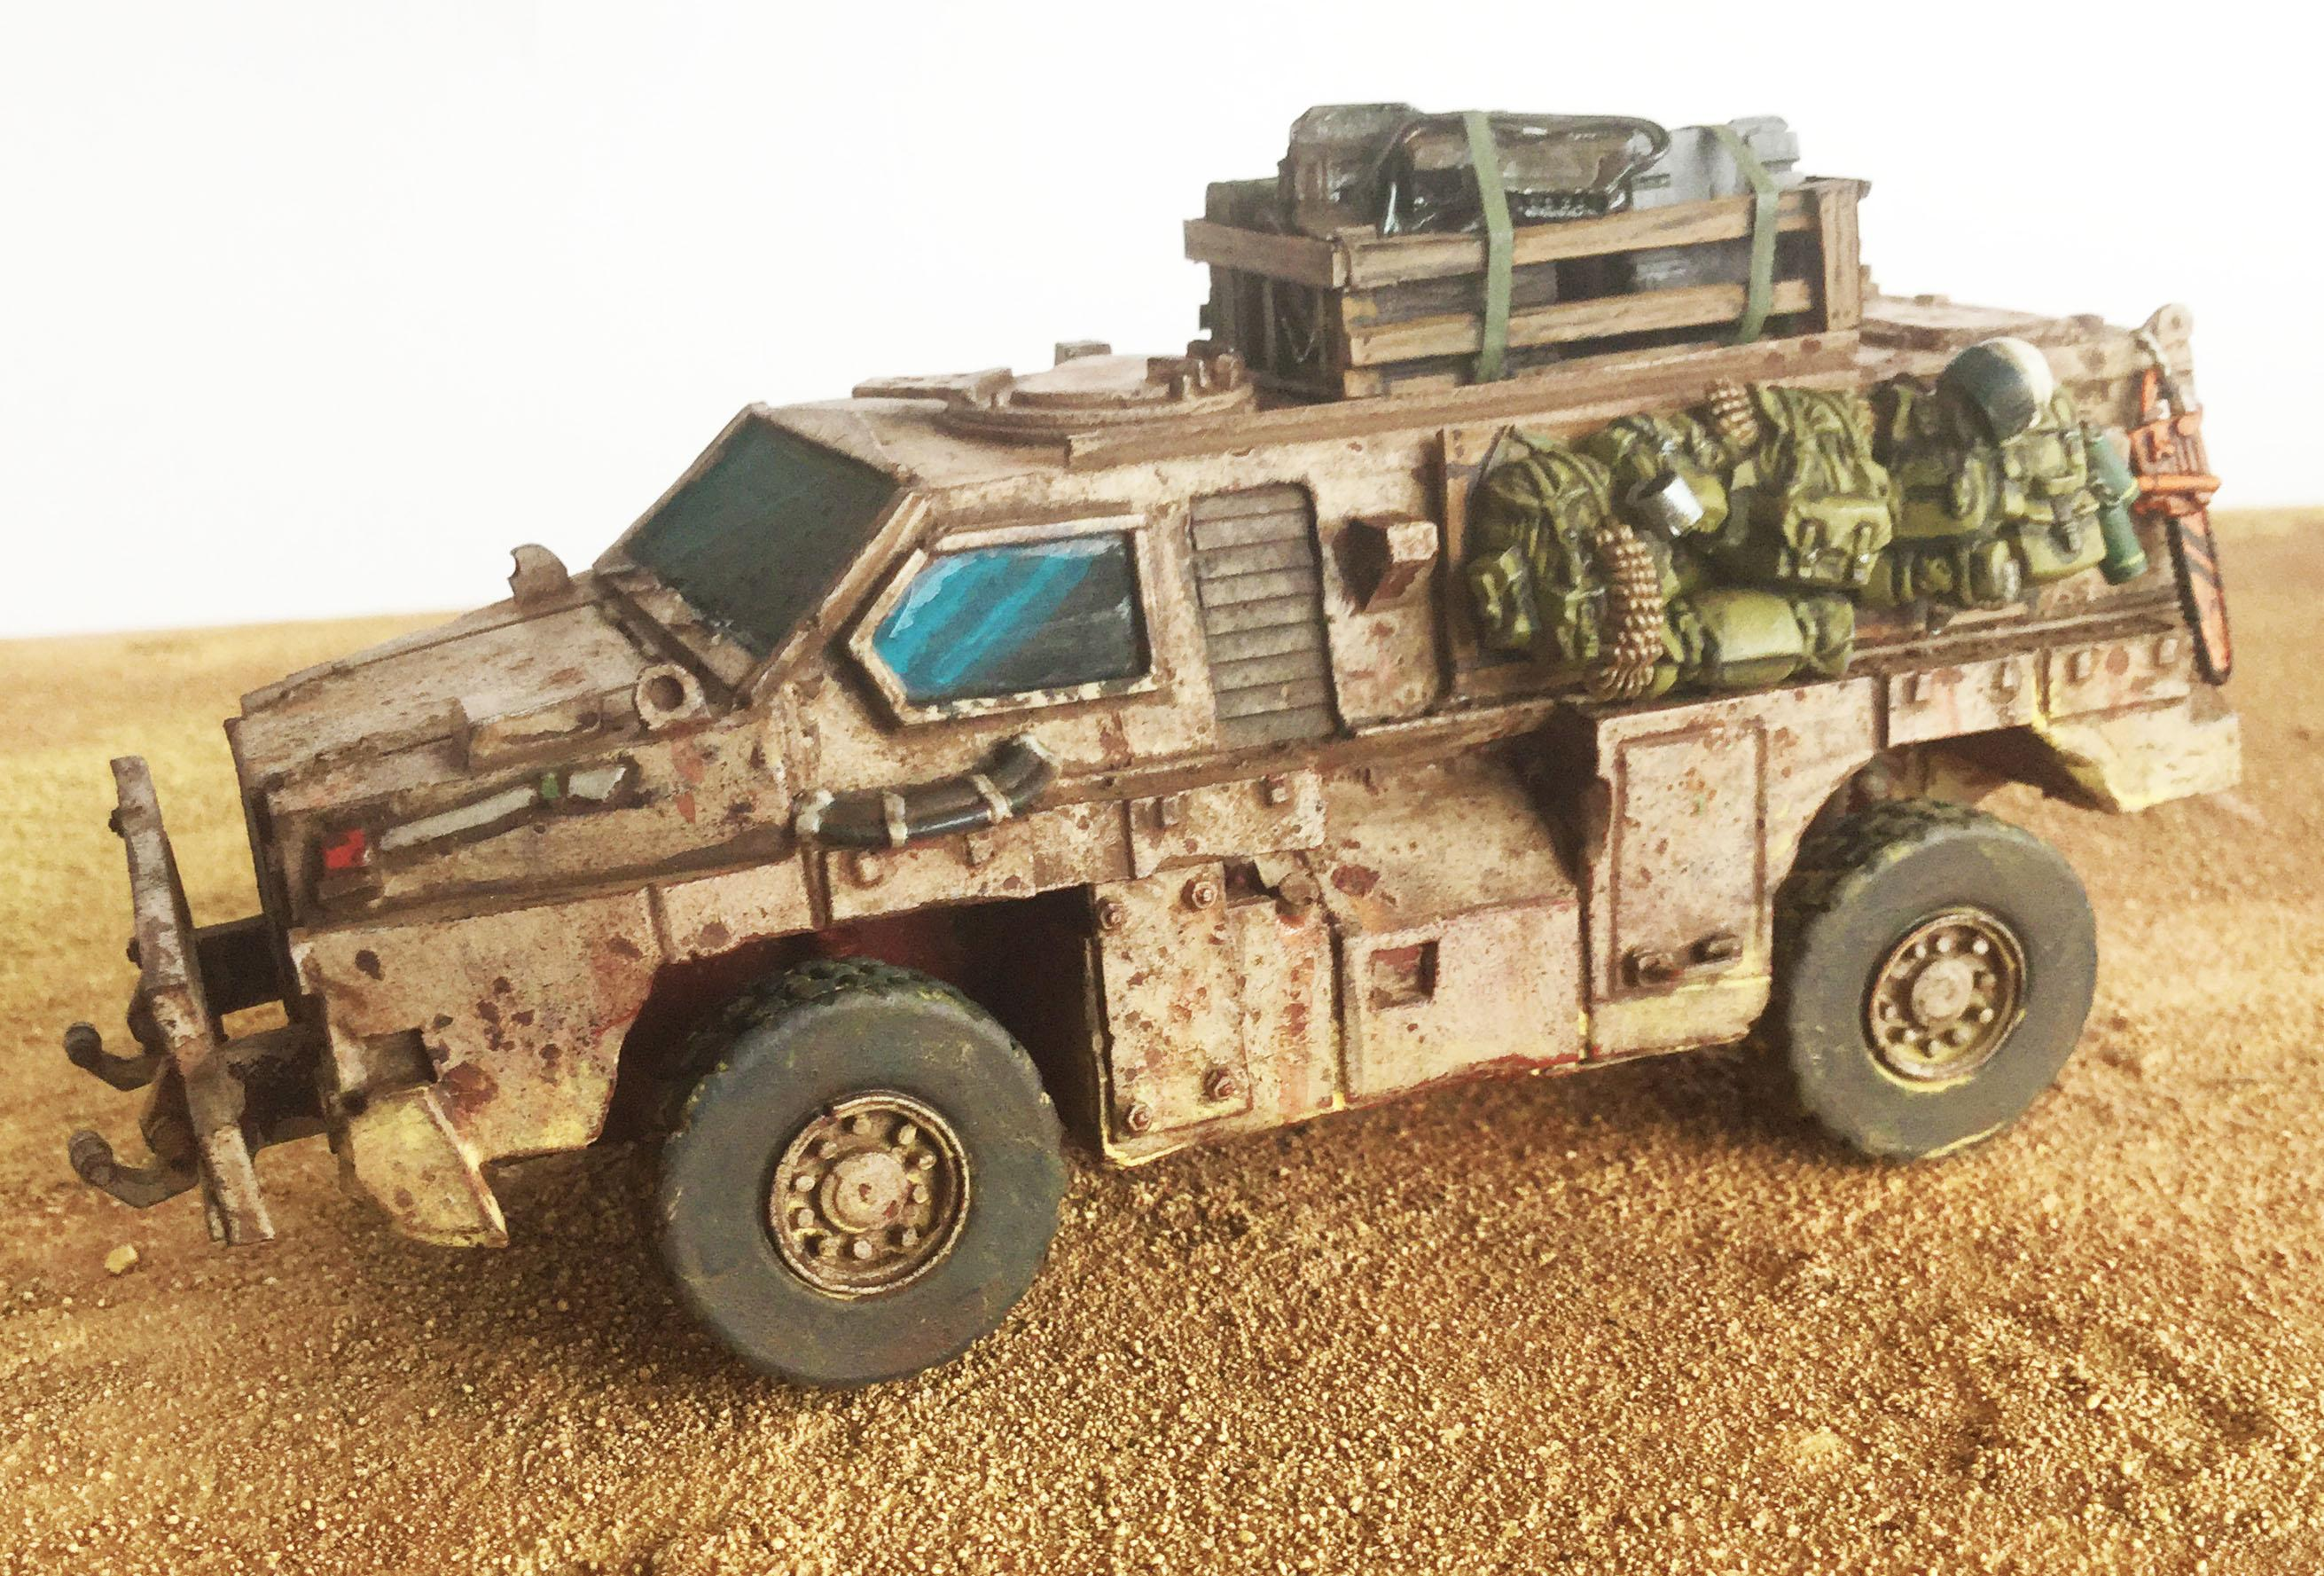 Imperial Guard, Scout Car, Weathered